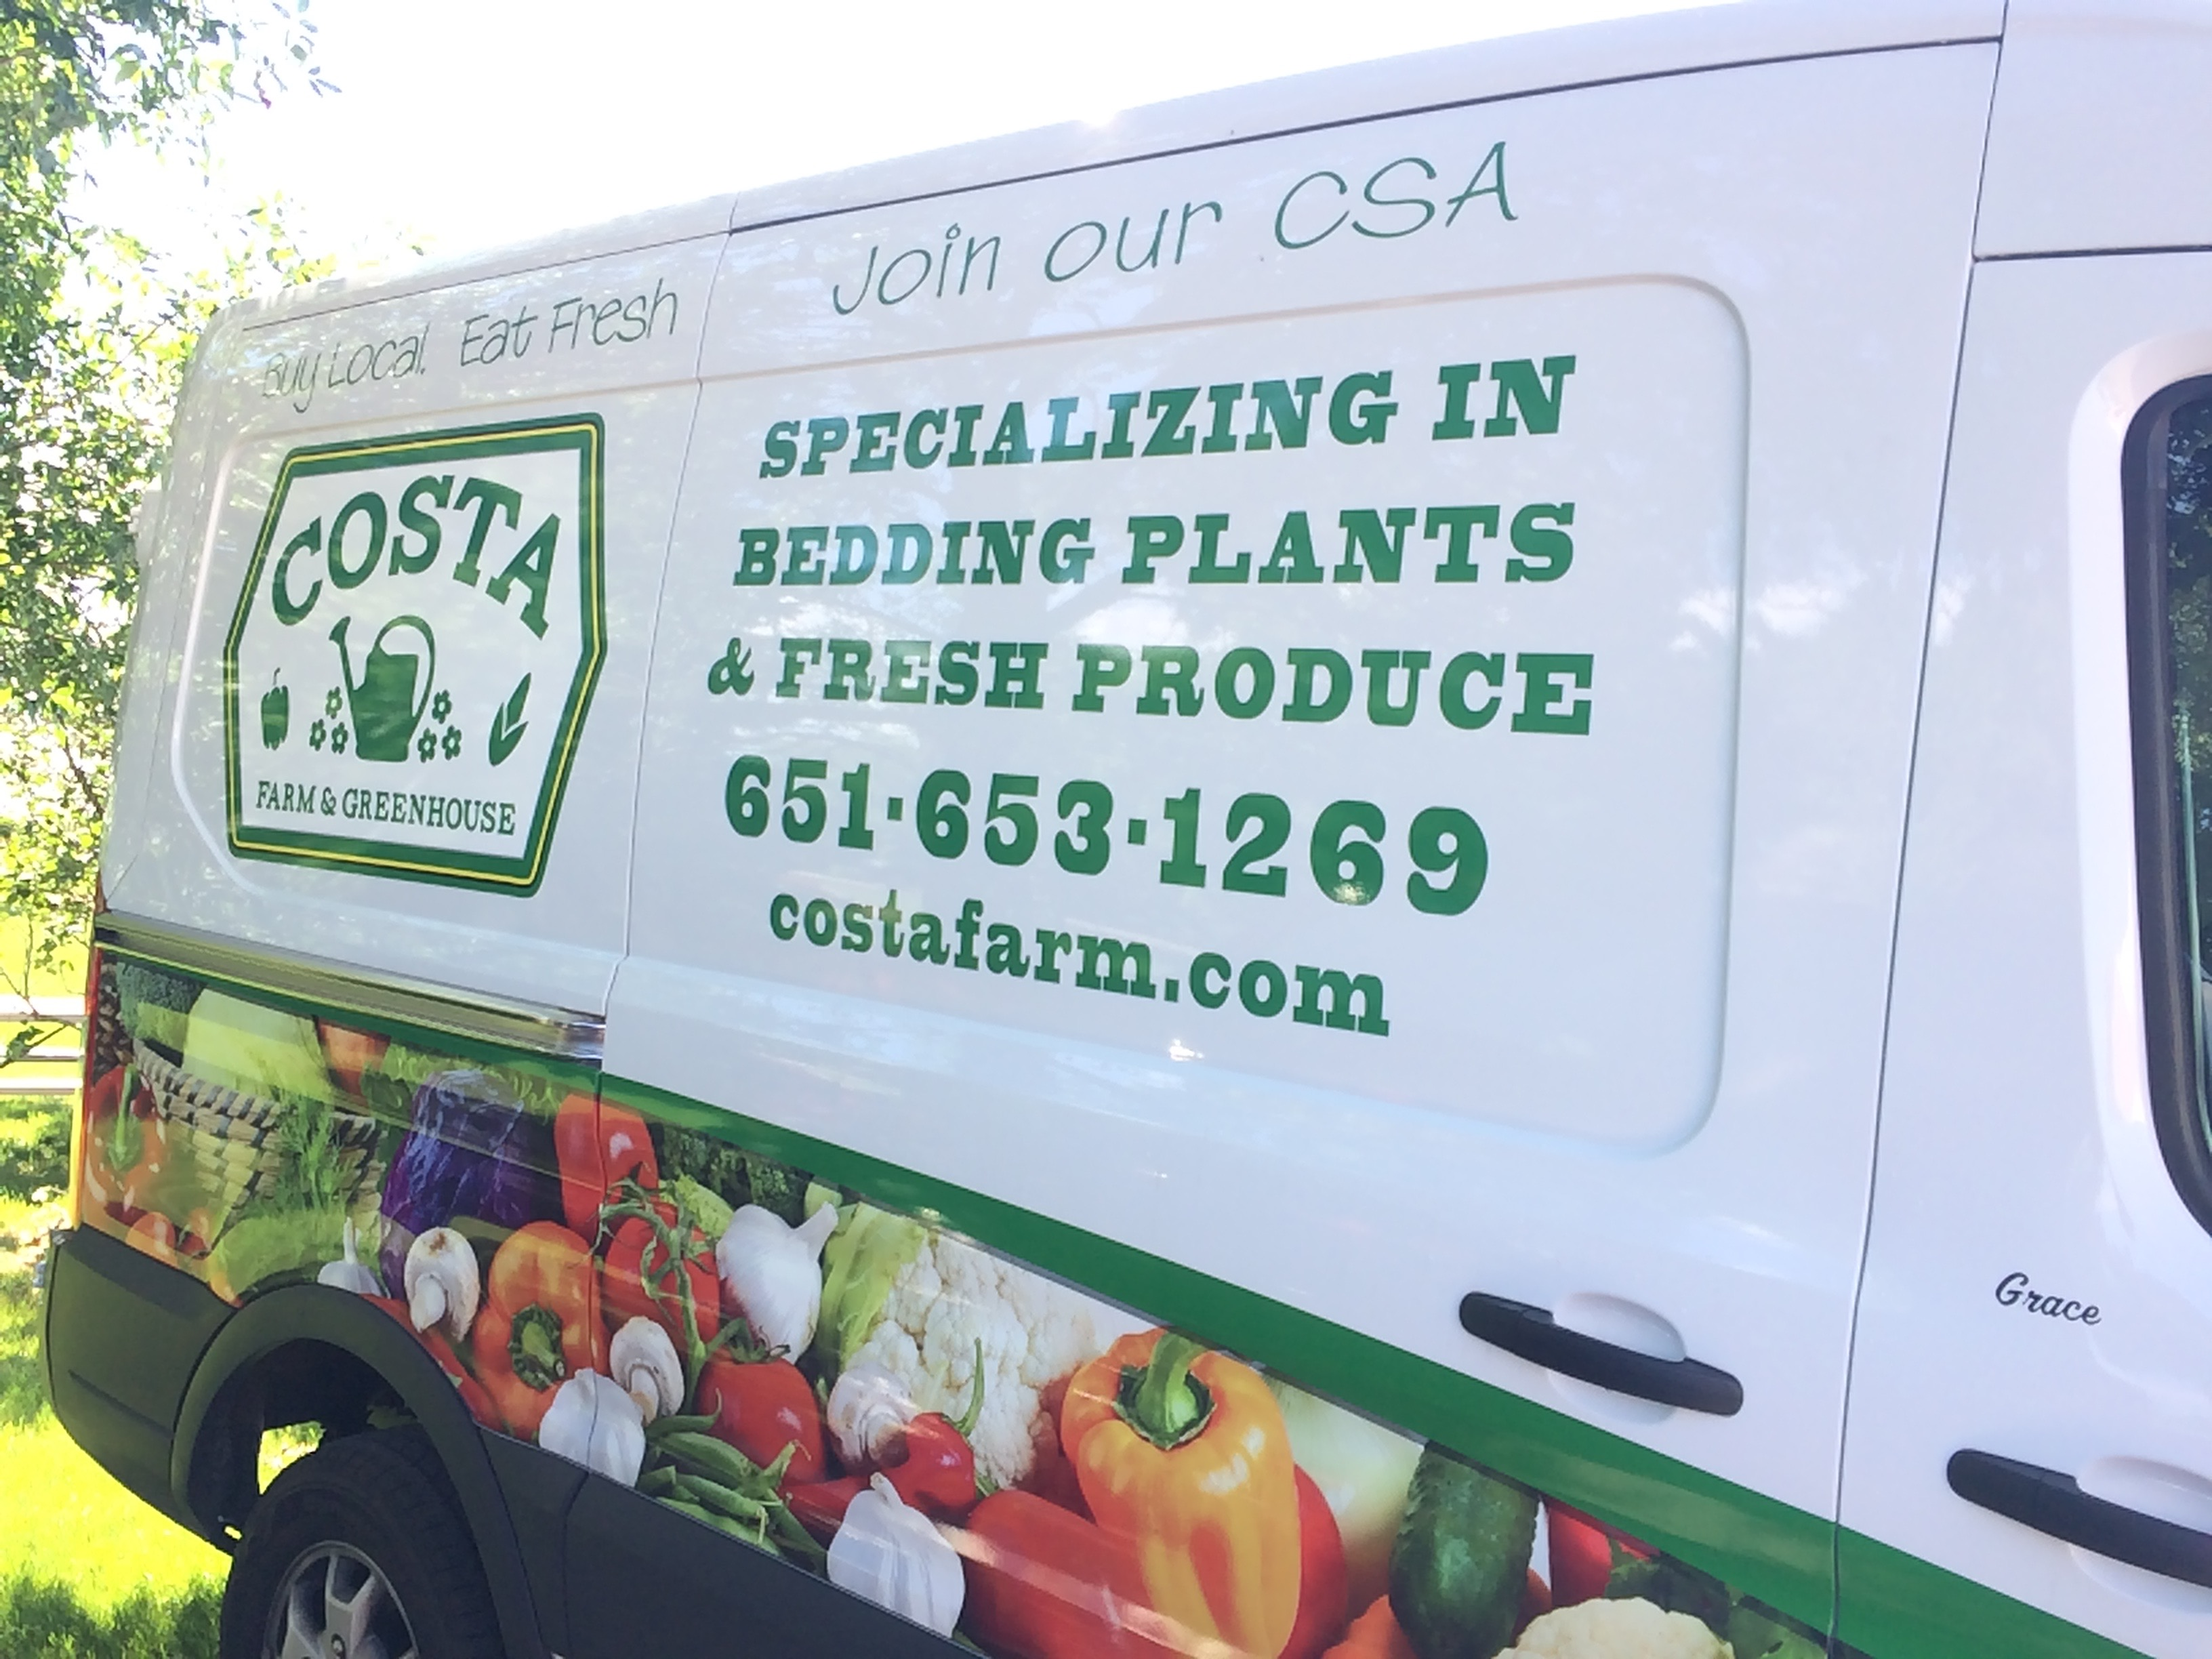 CSA Delivery Van...so sweet!